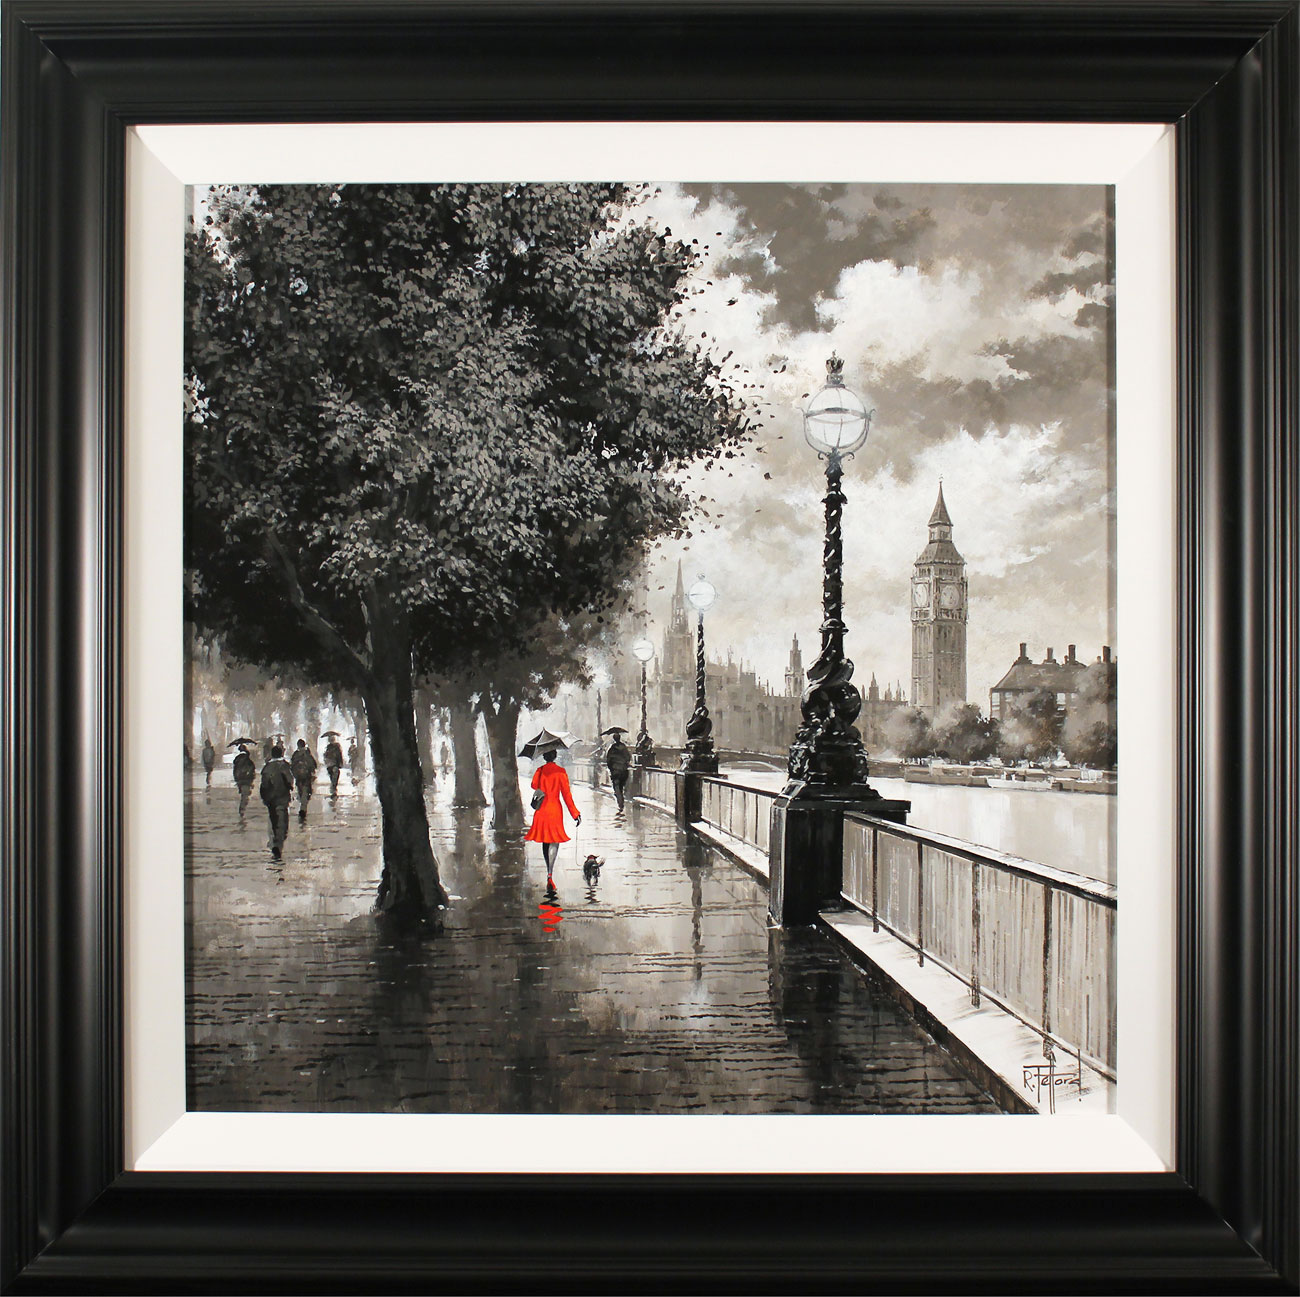 Richard Telford, Original oil painting on panel, The Queen's Walk, London Click to enlarge